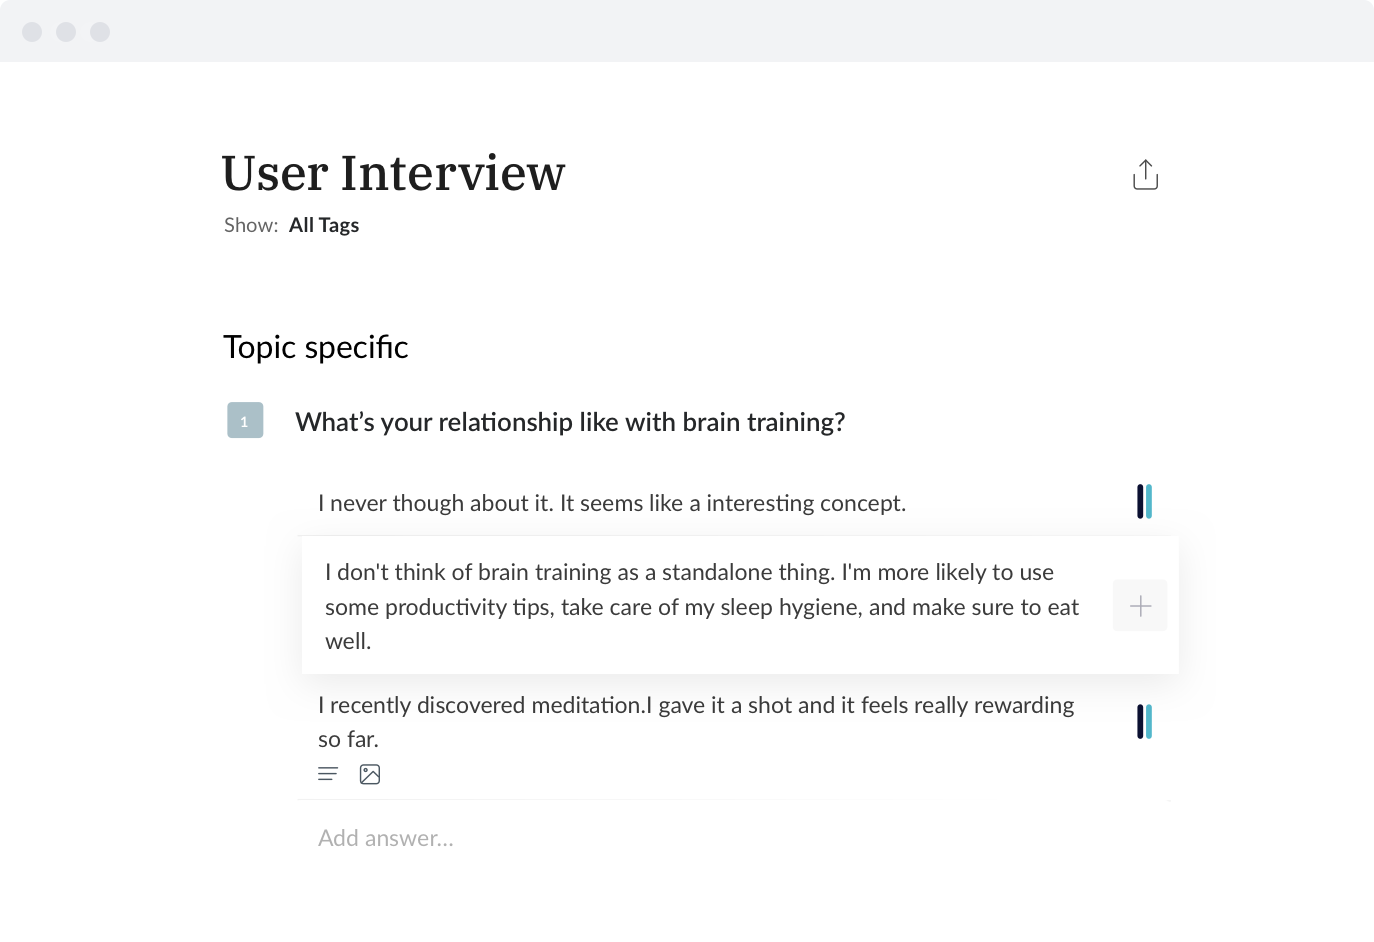 User Interview image